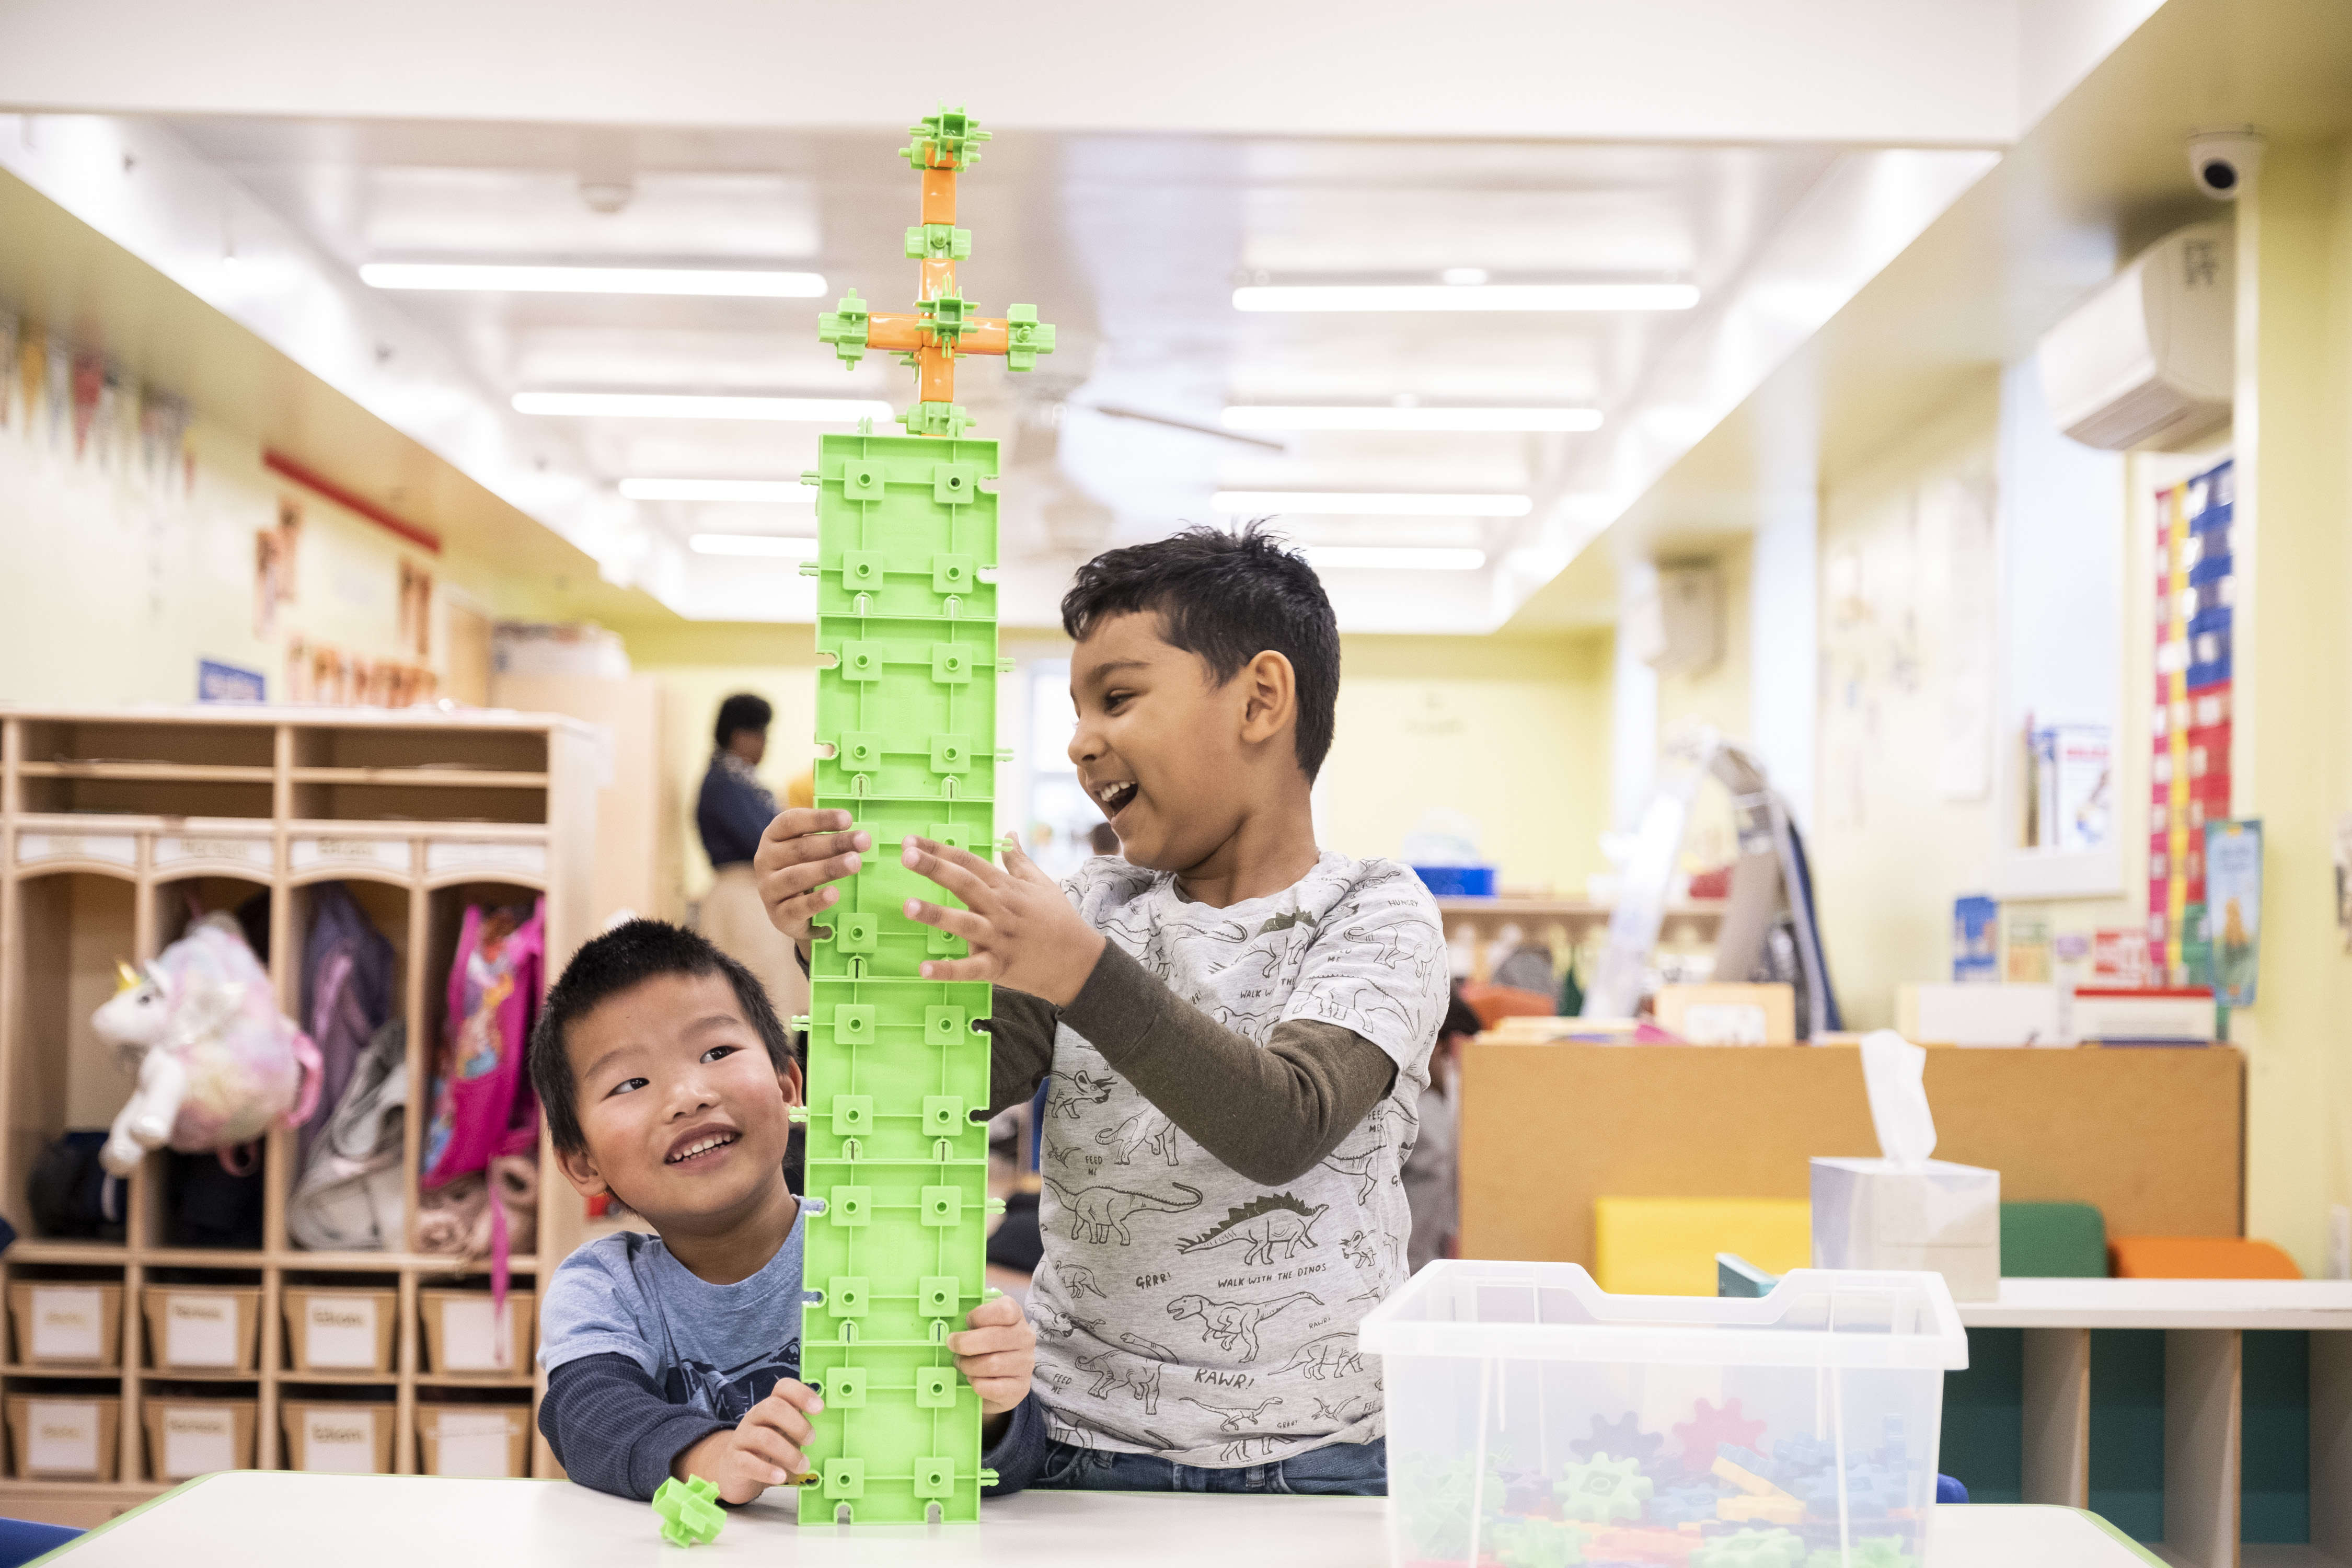 Two children have fun in the classroom with building blocks